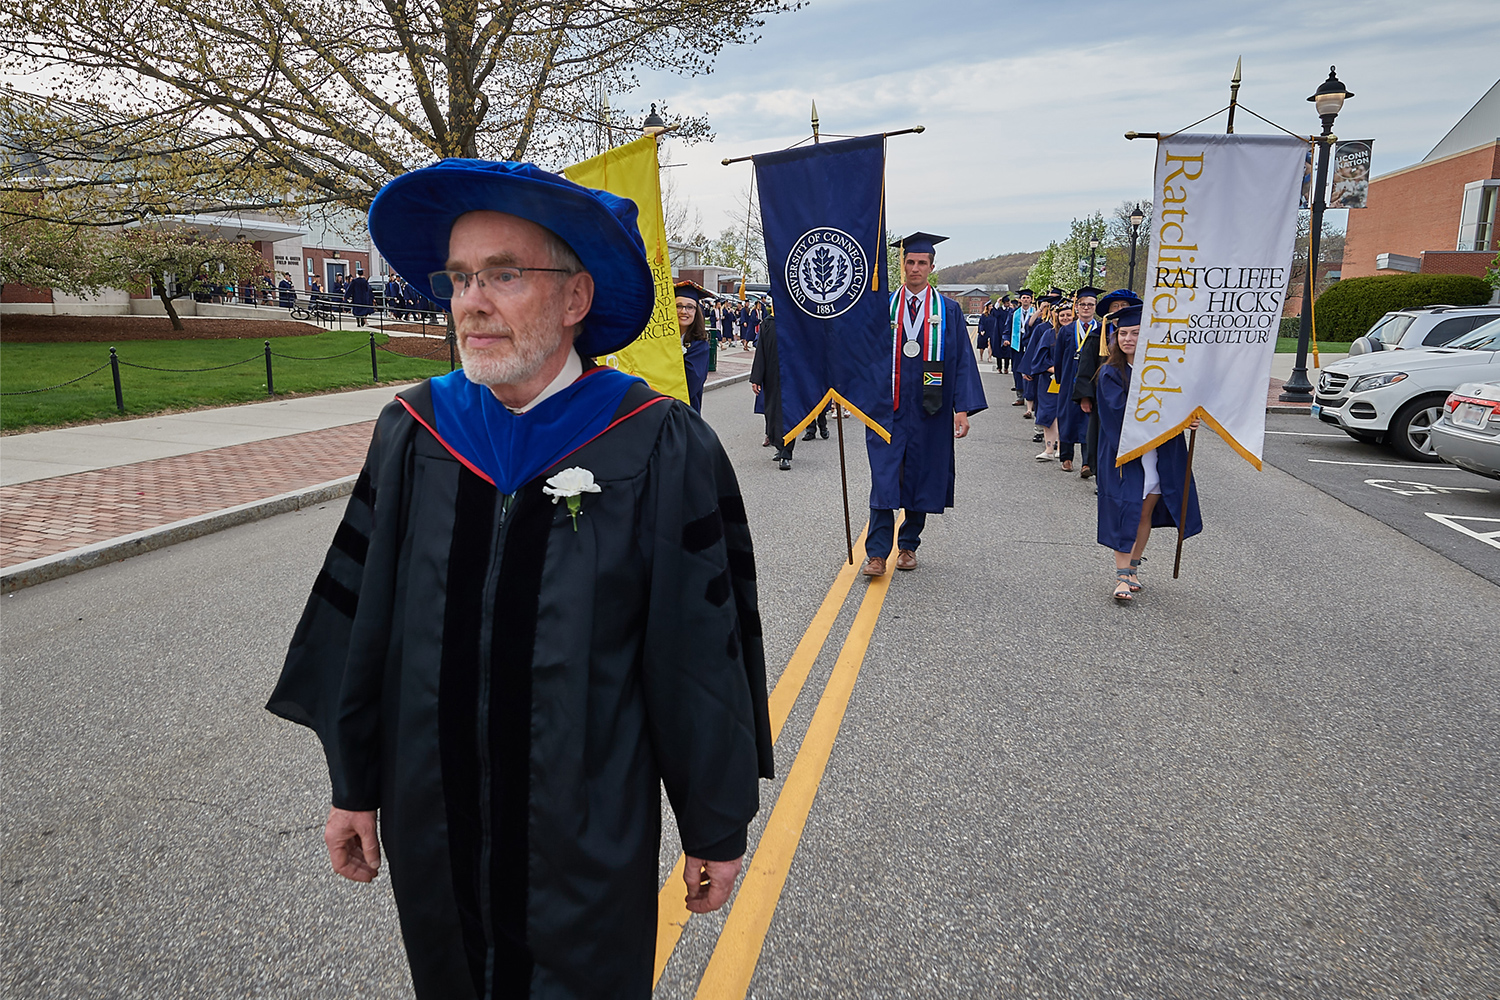 Hedley Freake leading commencement procession